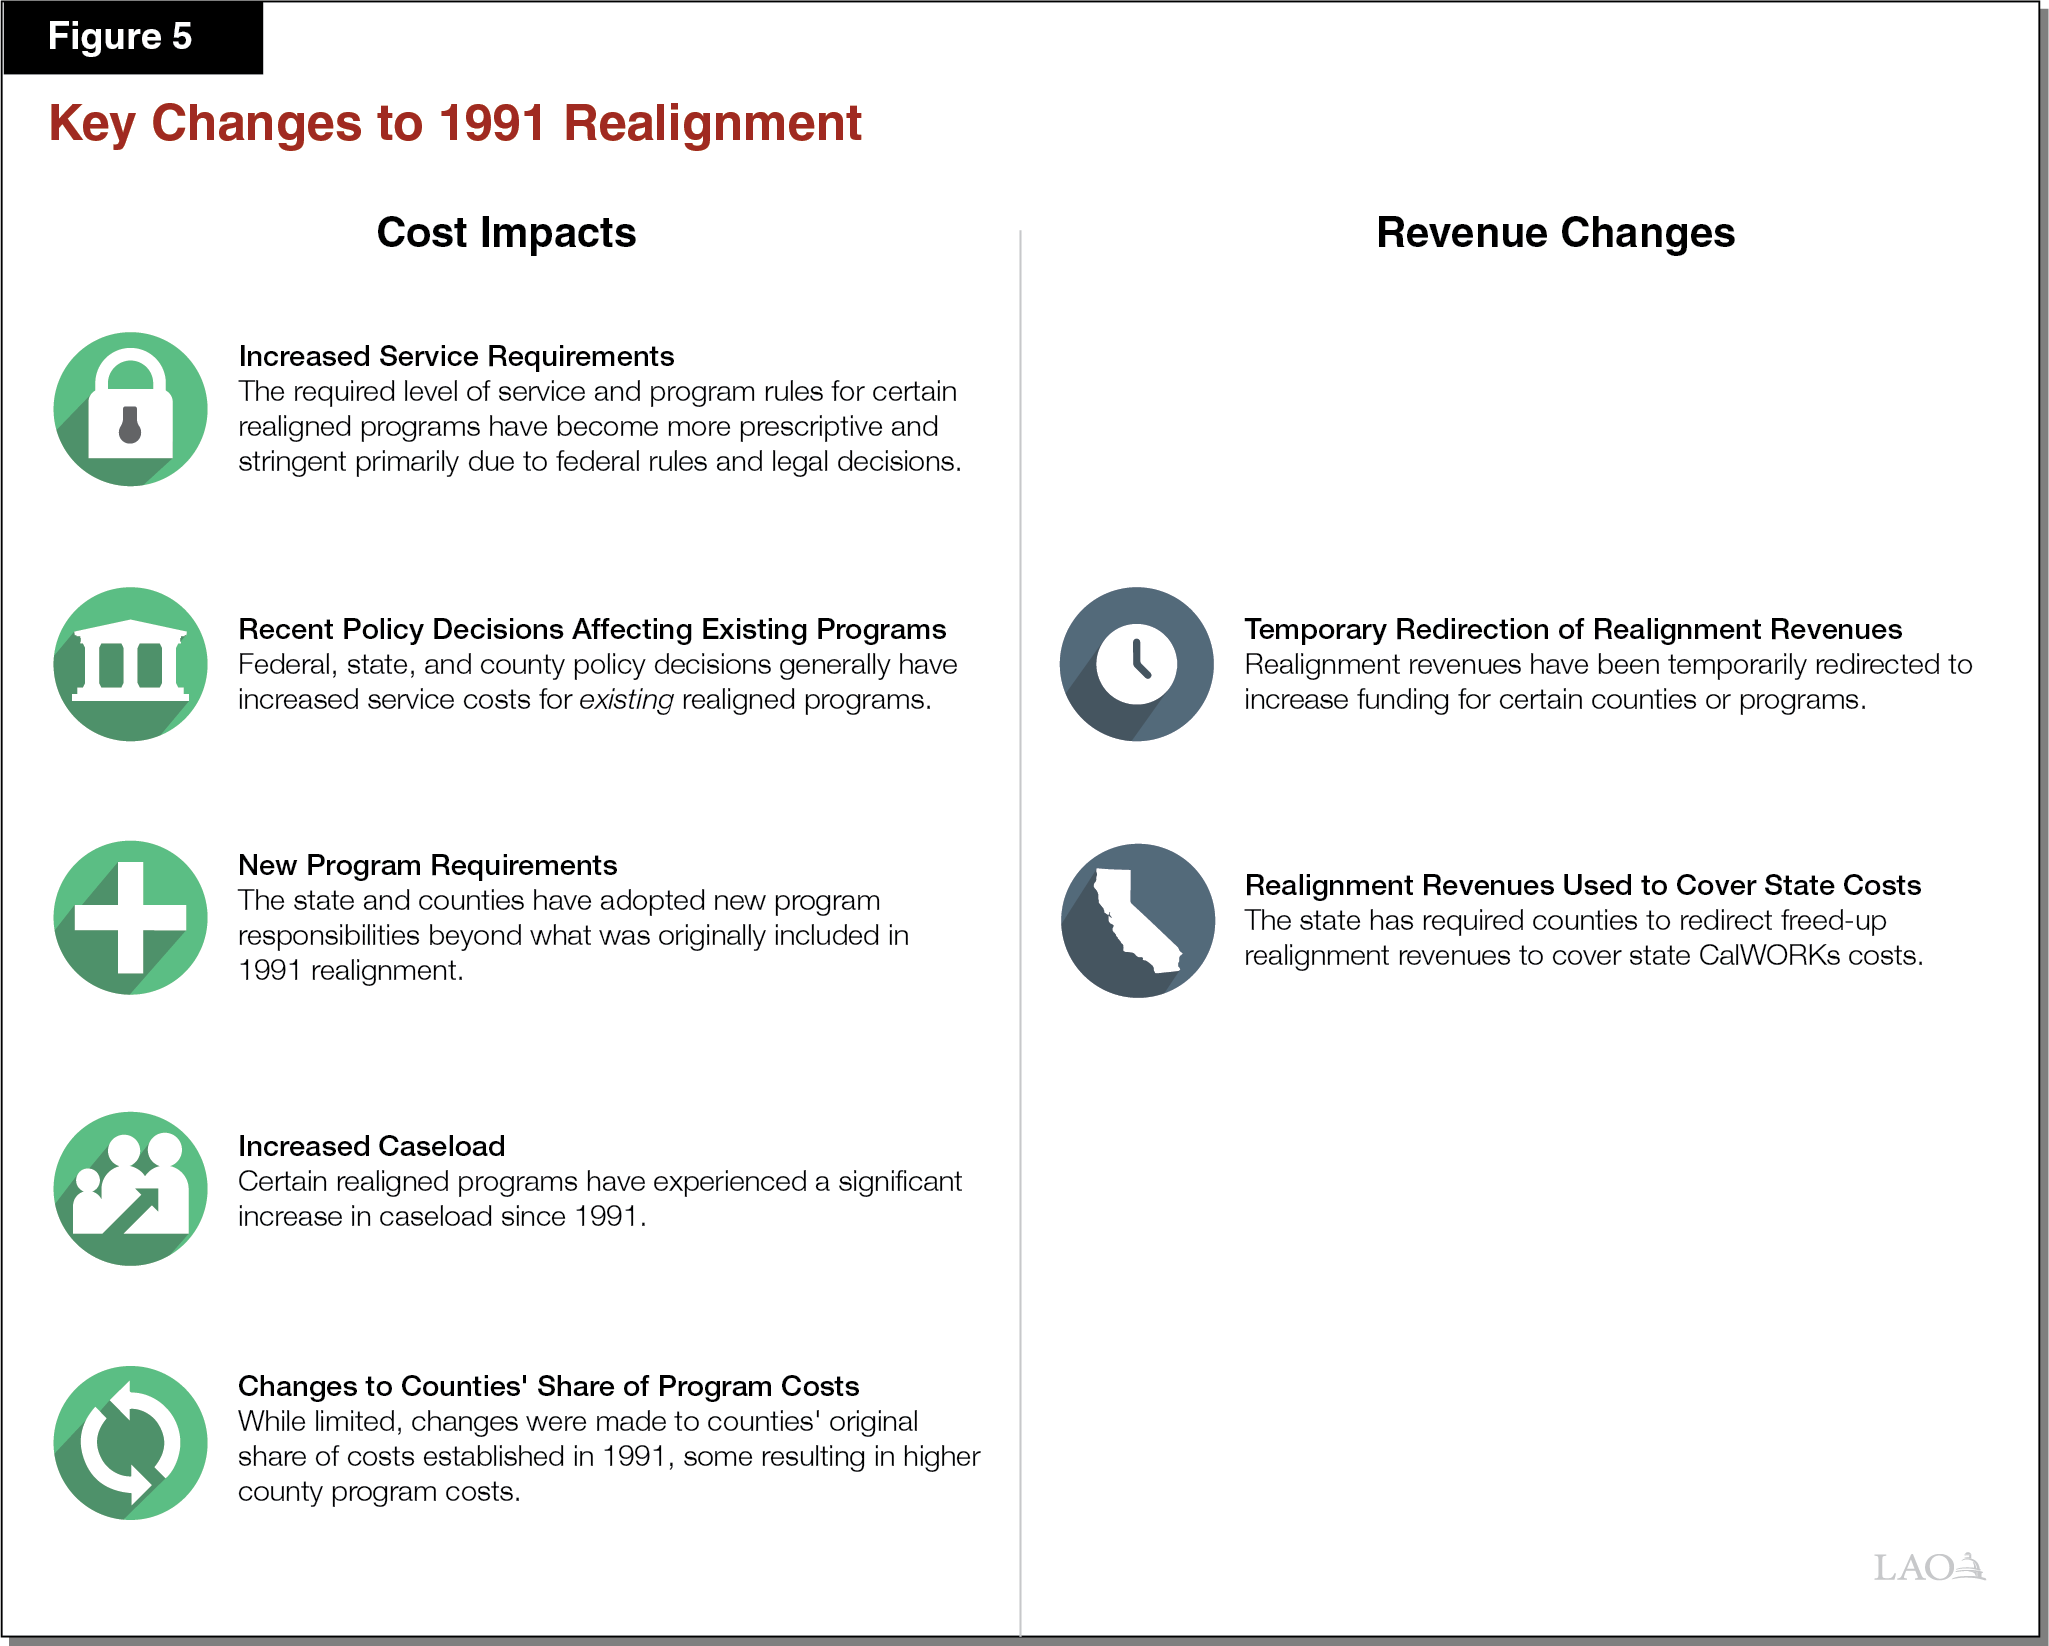 Figure 5 - Key Changes to 1991 Realignment